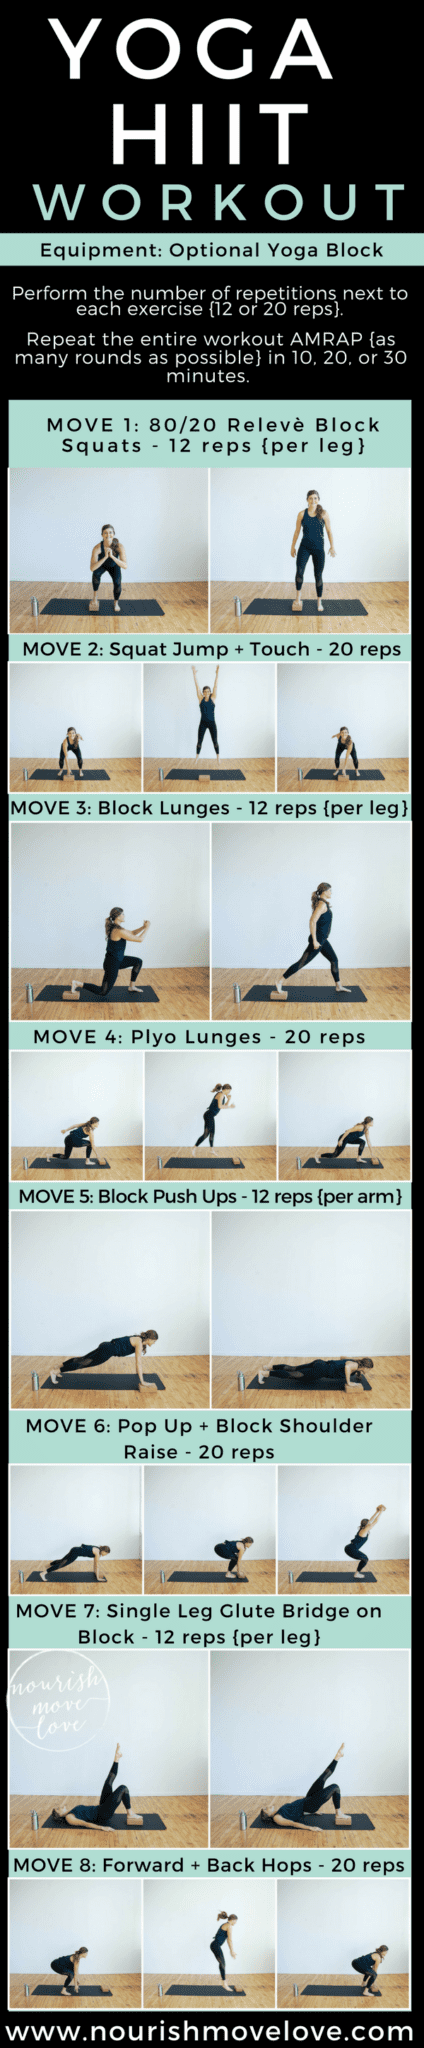 Yoga Hiit Workout With Athleta Nourish Move Love